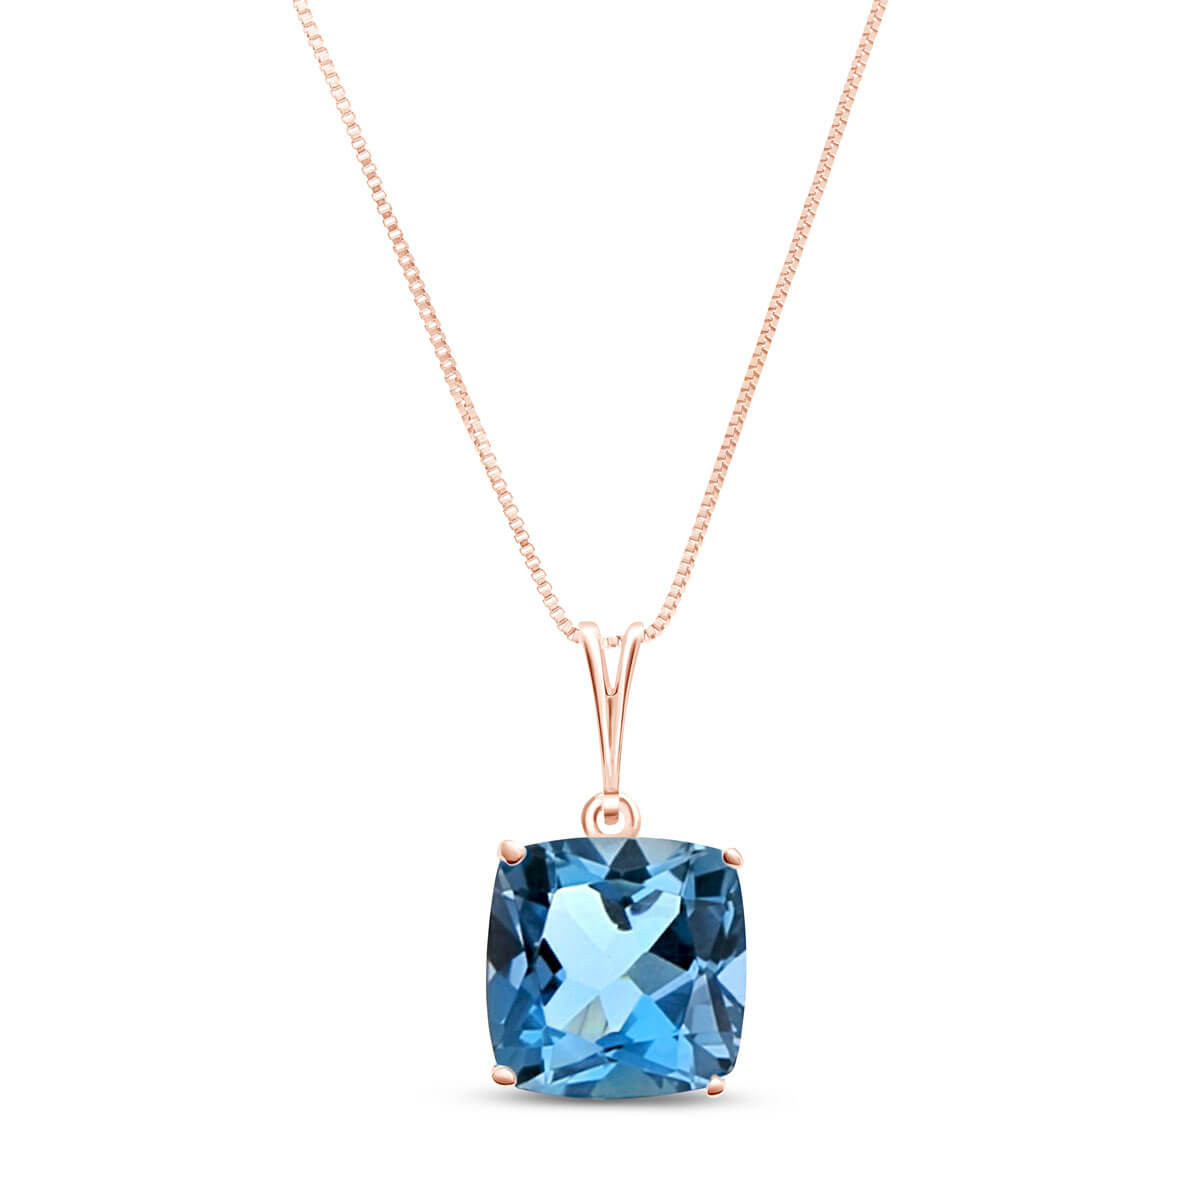 Blue Topaz Rococo Pendant Necklace 3.6 ct in 9ct Rose Gold